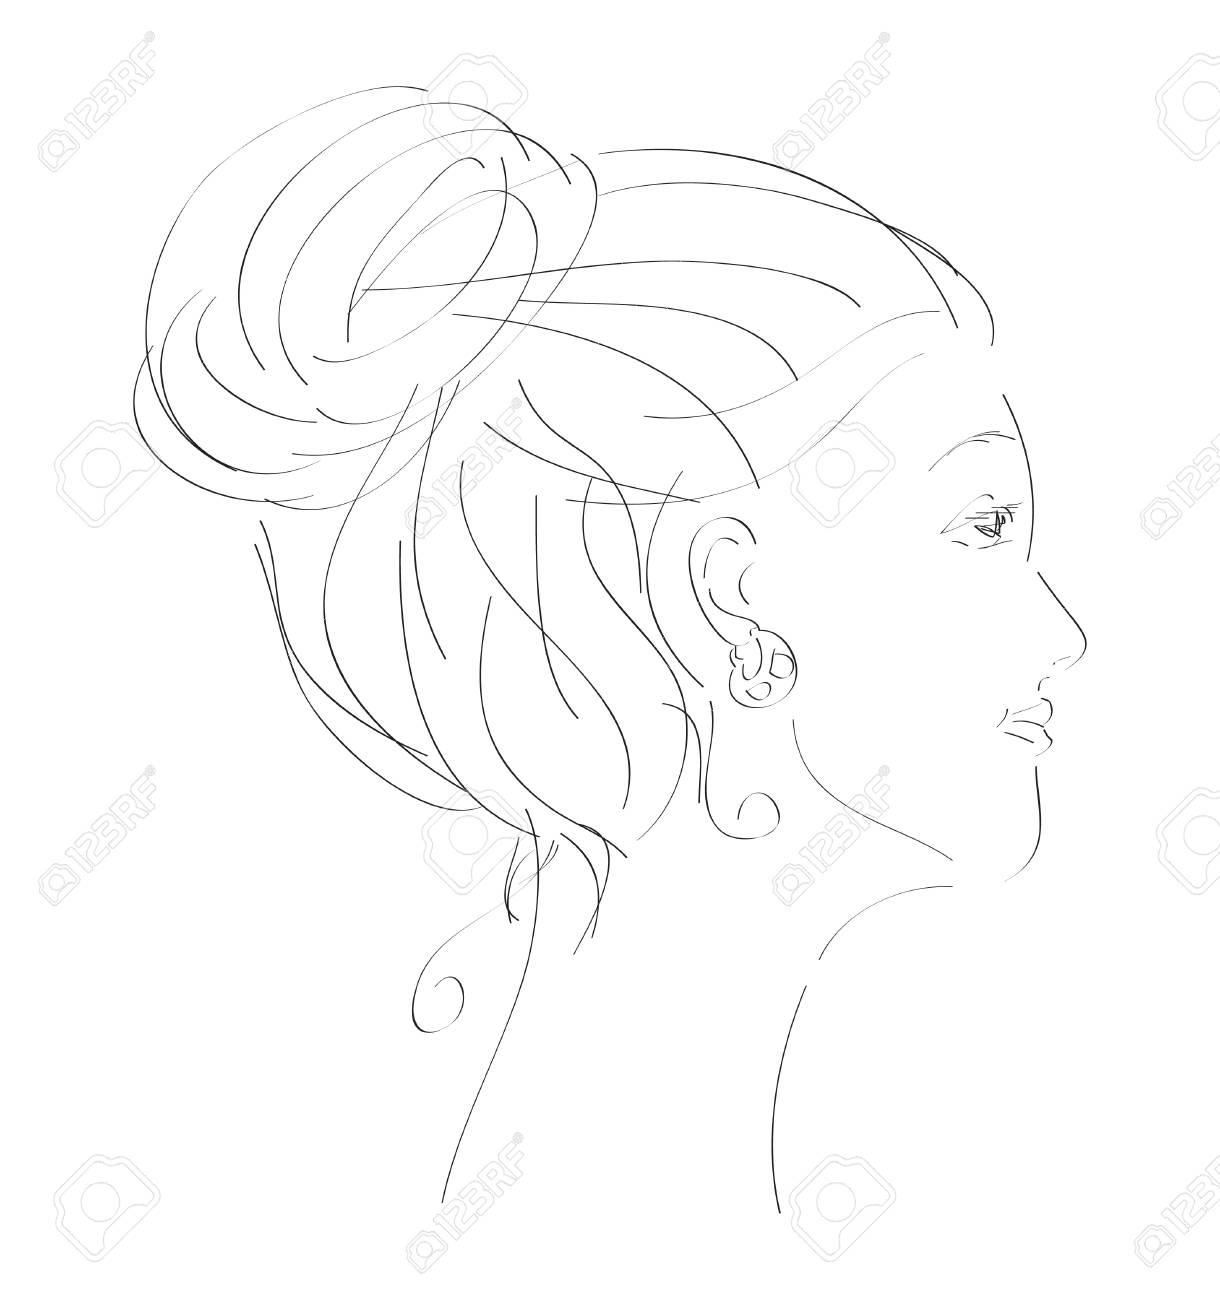 Vintage, hand drawn illustration of woman Stock Vector - 7958125